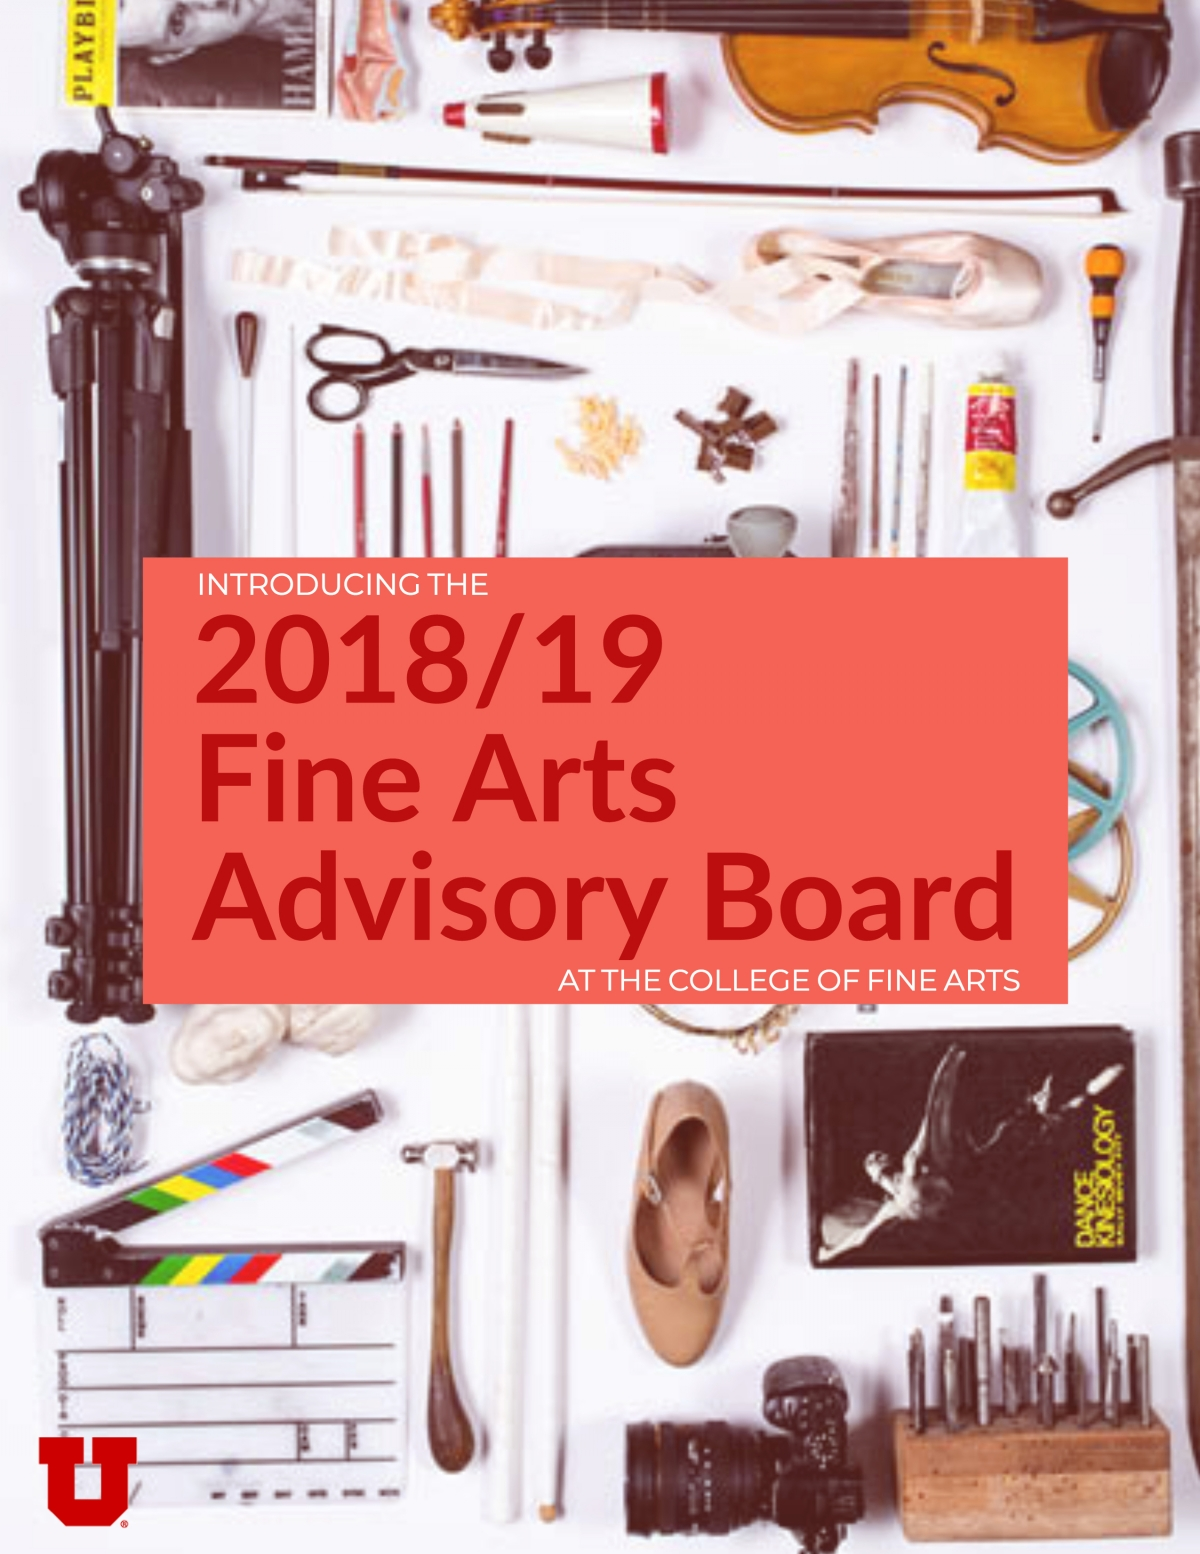 Meet the 2018/19 FAAB Board